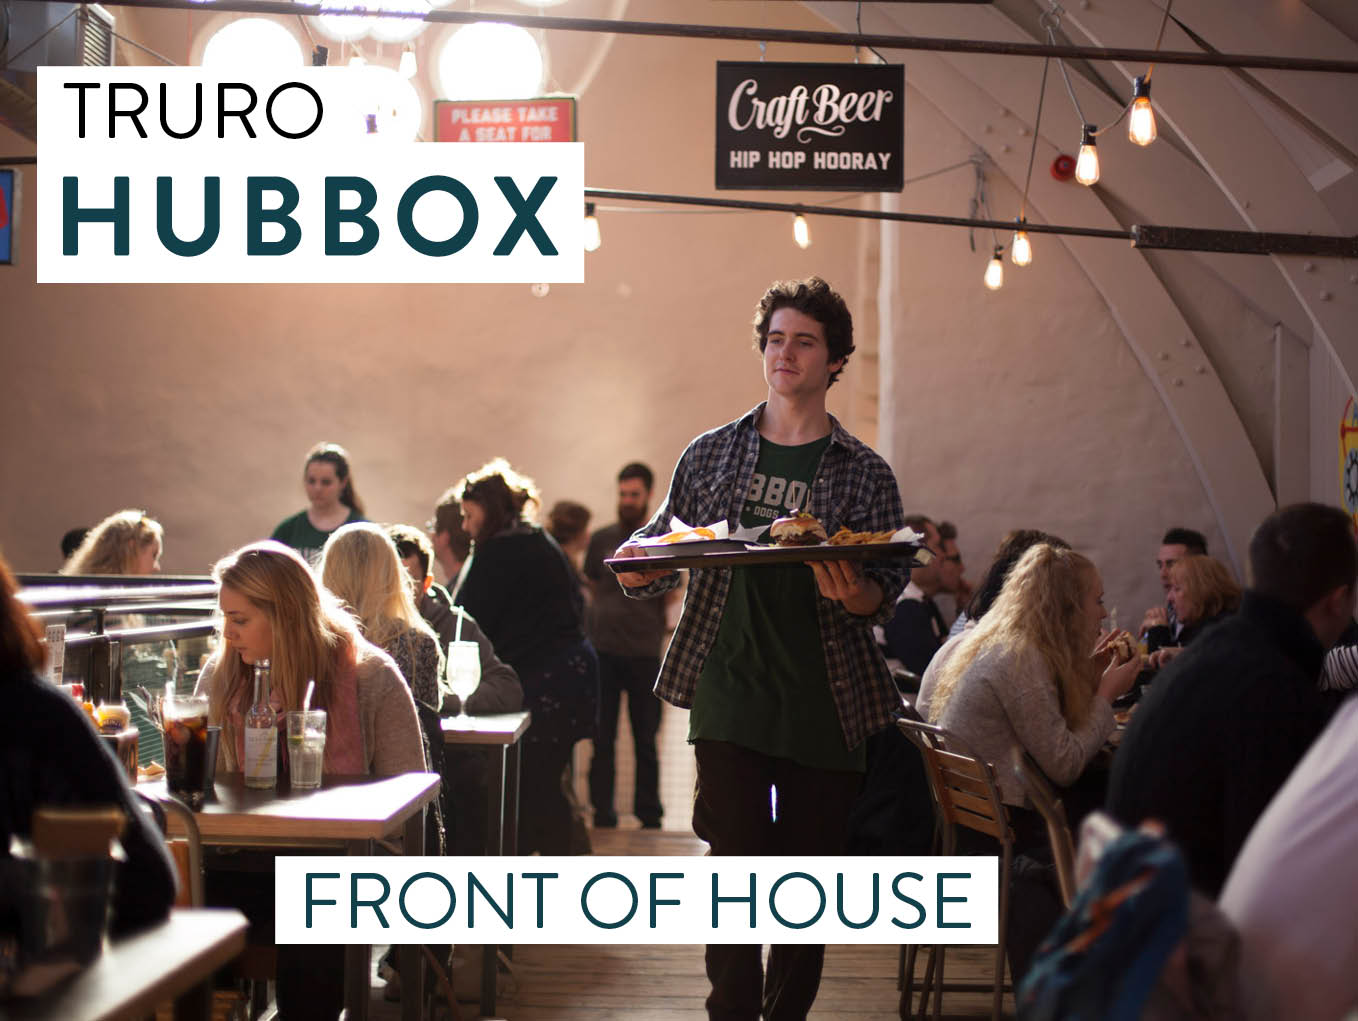 HUBBOX Truro Front of House